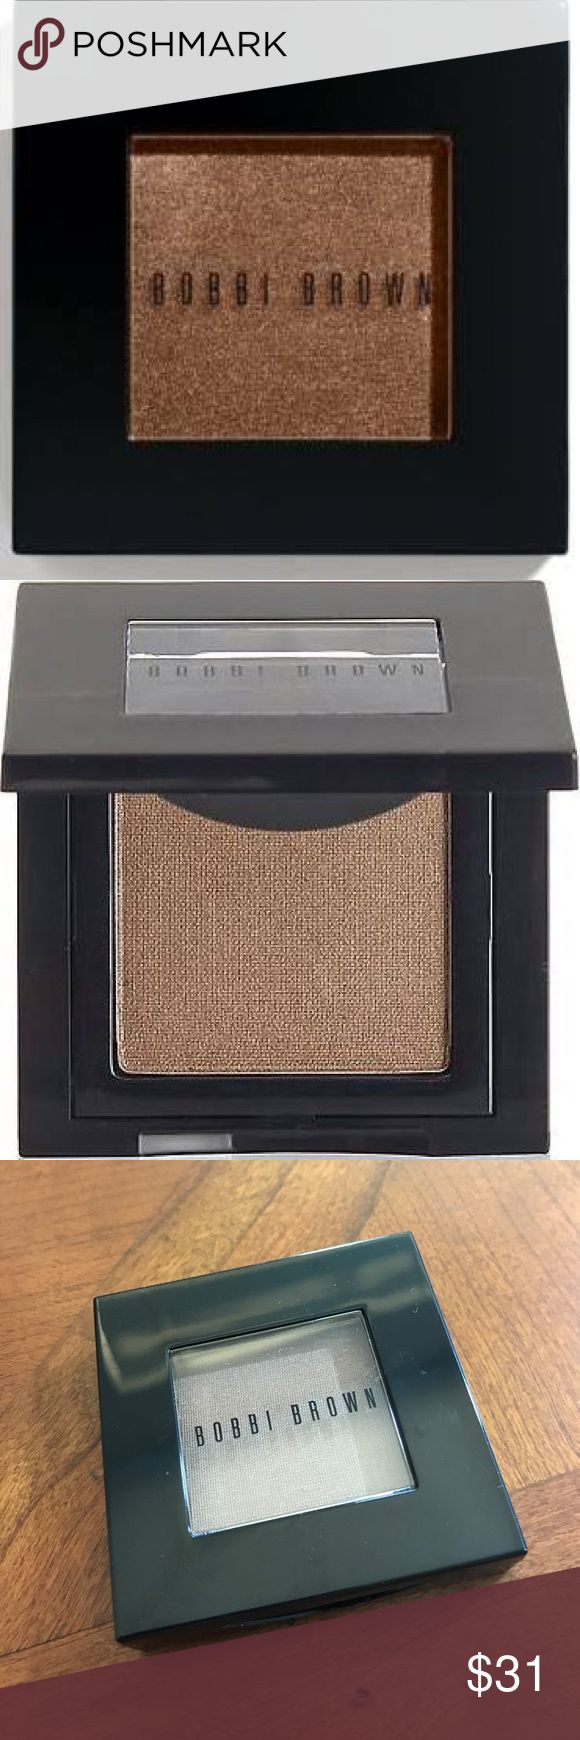 Bobbi Brown Metallic Eye Shadow in Burnt Sugar New without tags, never used. Photos 1-2 are stock photos. Photos 3-5 are of actual item. I do not trade. Bobbi Brown Makeup Eyeshadow